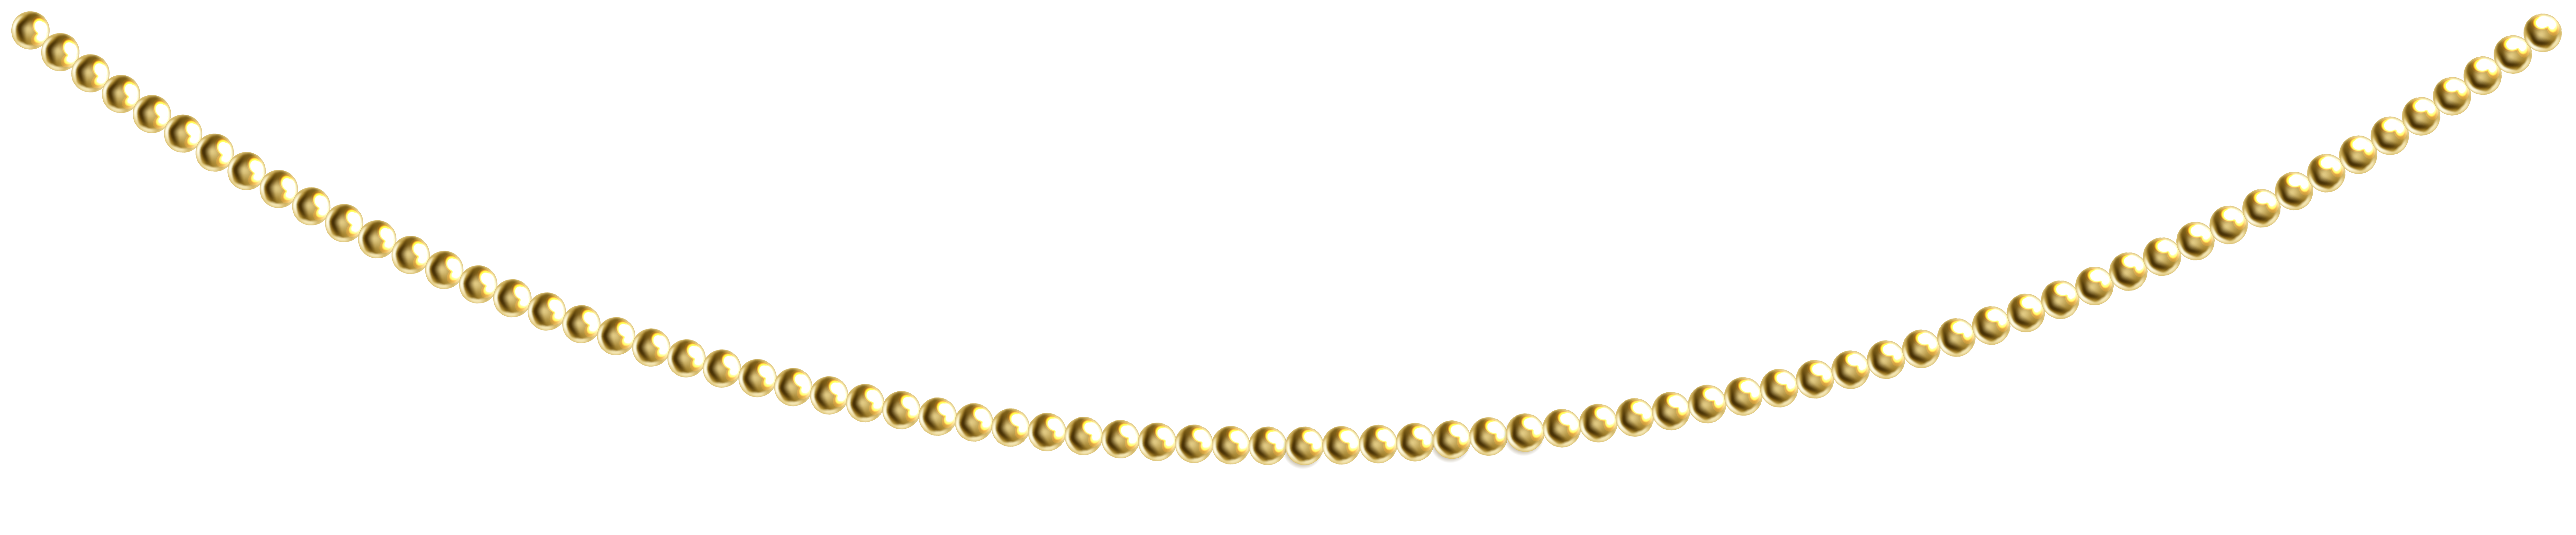 Necklace clipart transparent Yopriceville Beads Gold Clip PNG